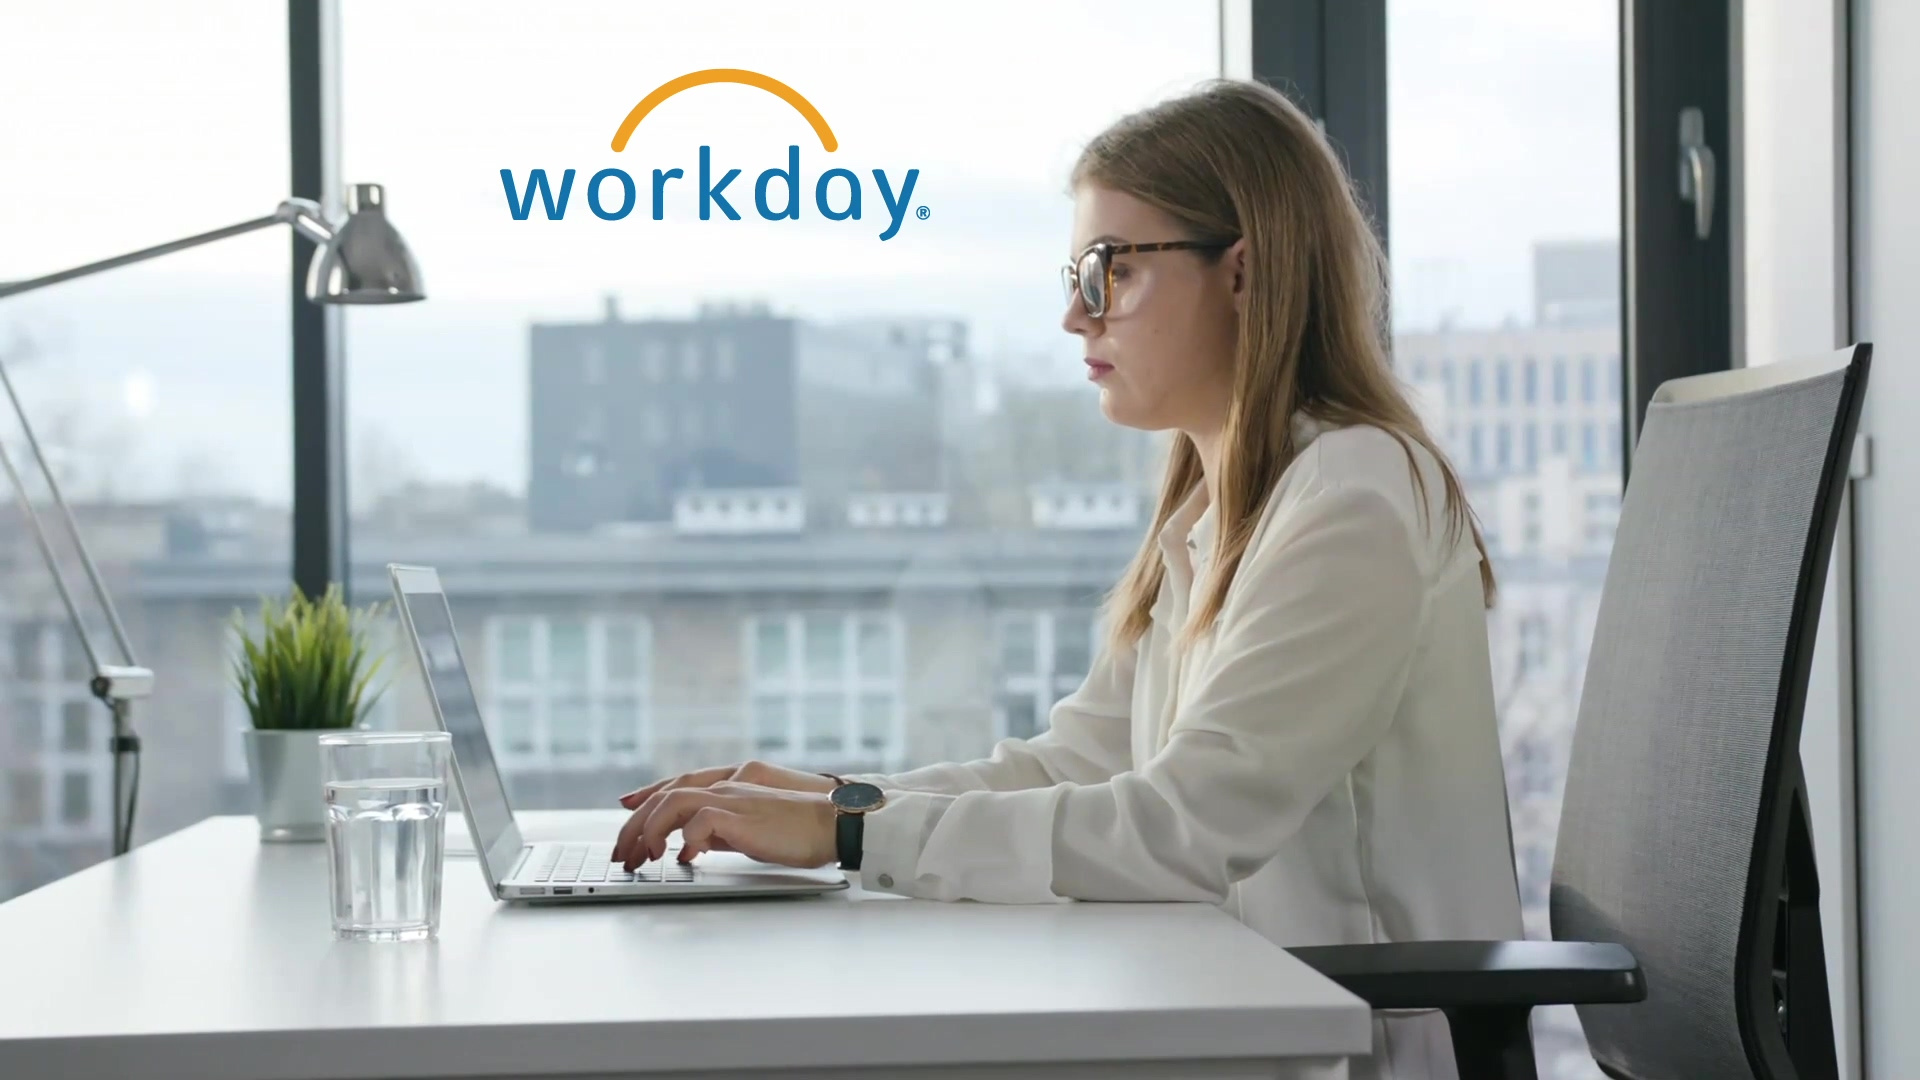 Workday Video